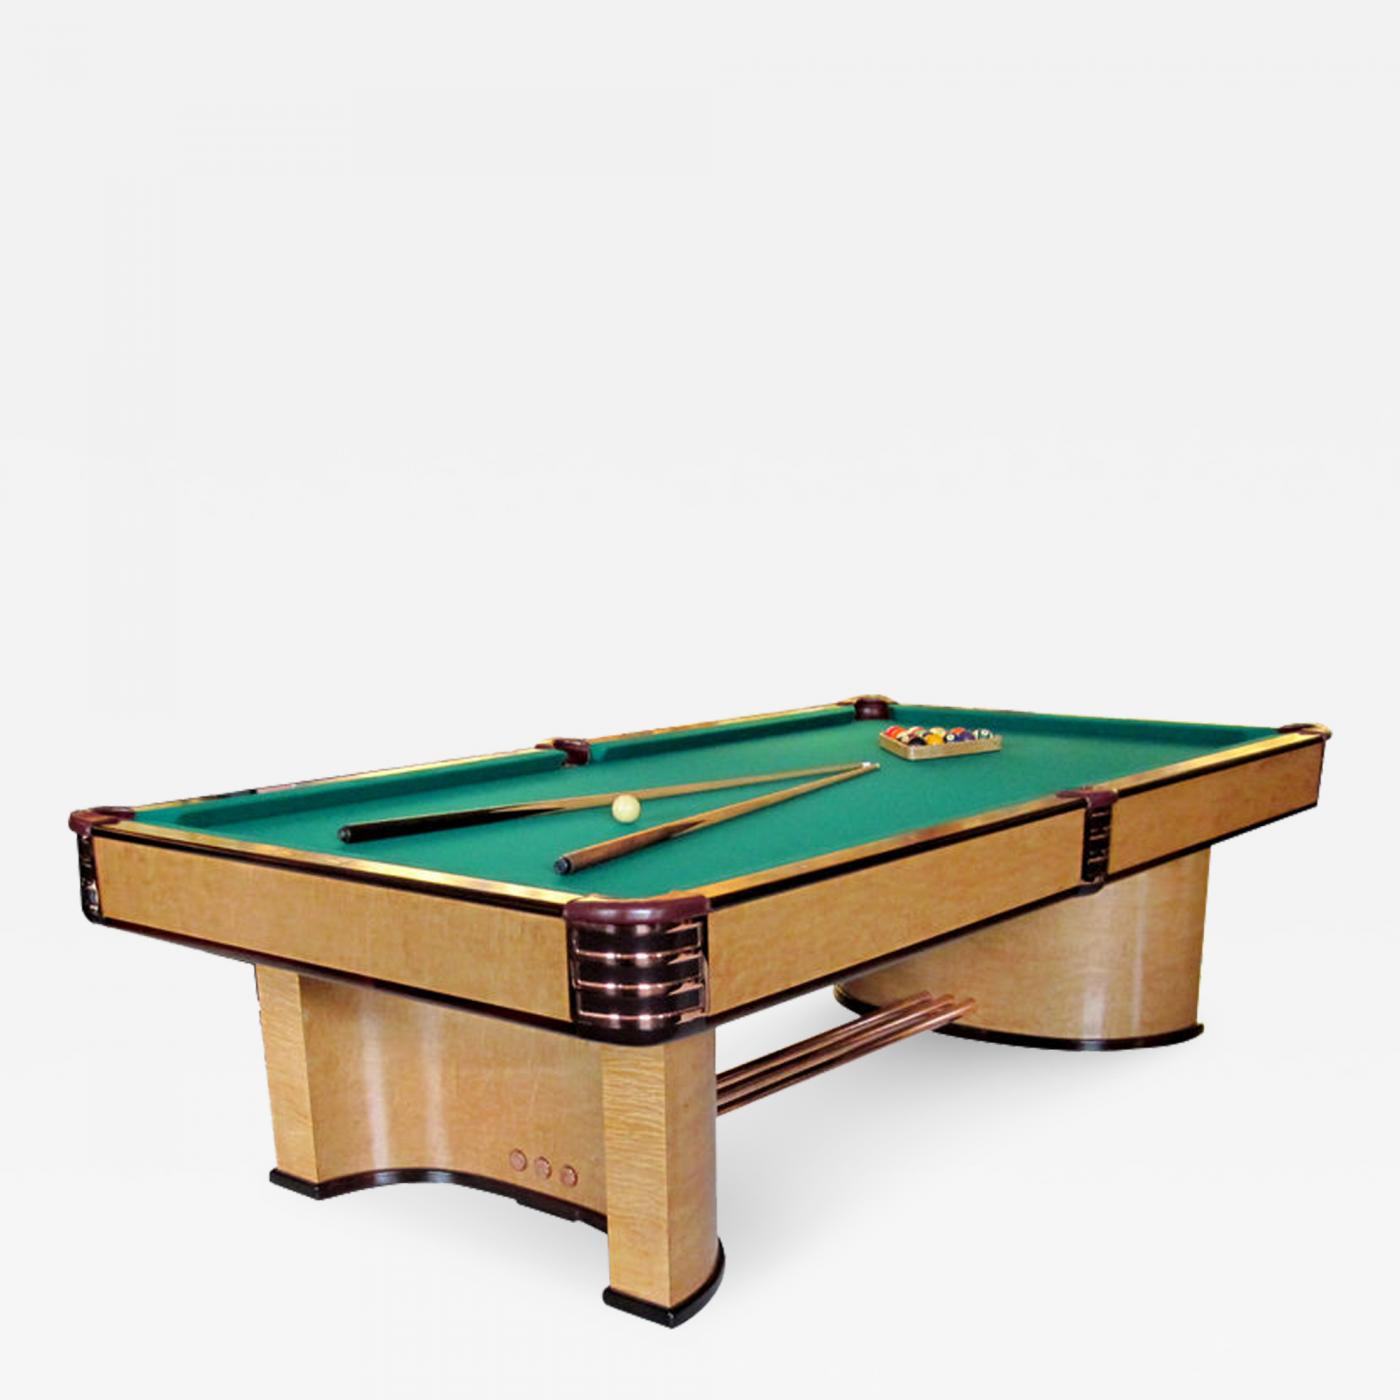 Donald Deskey Brunswick Paramount Art Deco Pool Table - Lucite pool table